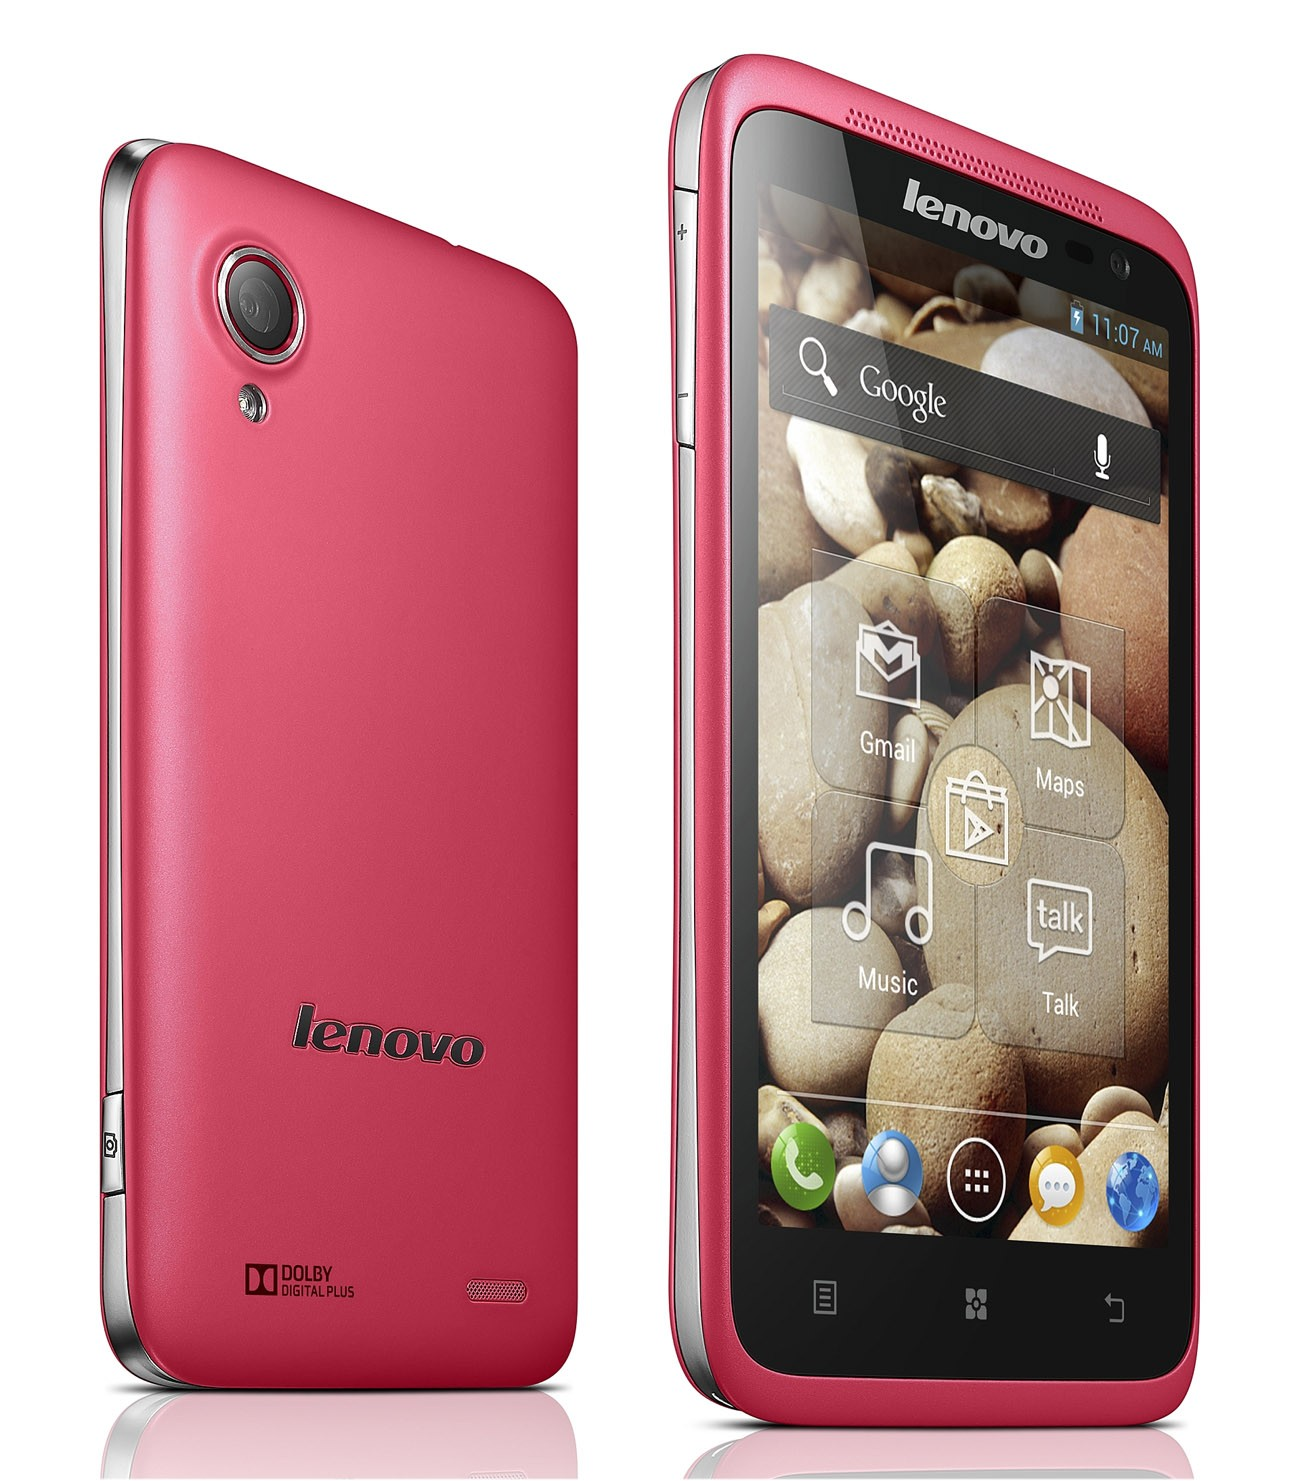 Lenovo IdeaPhone A670T